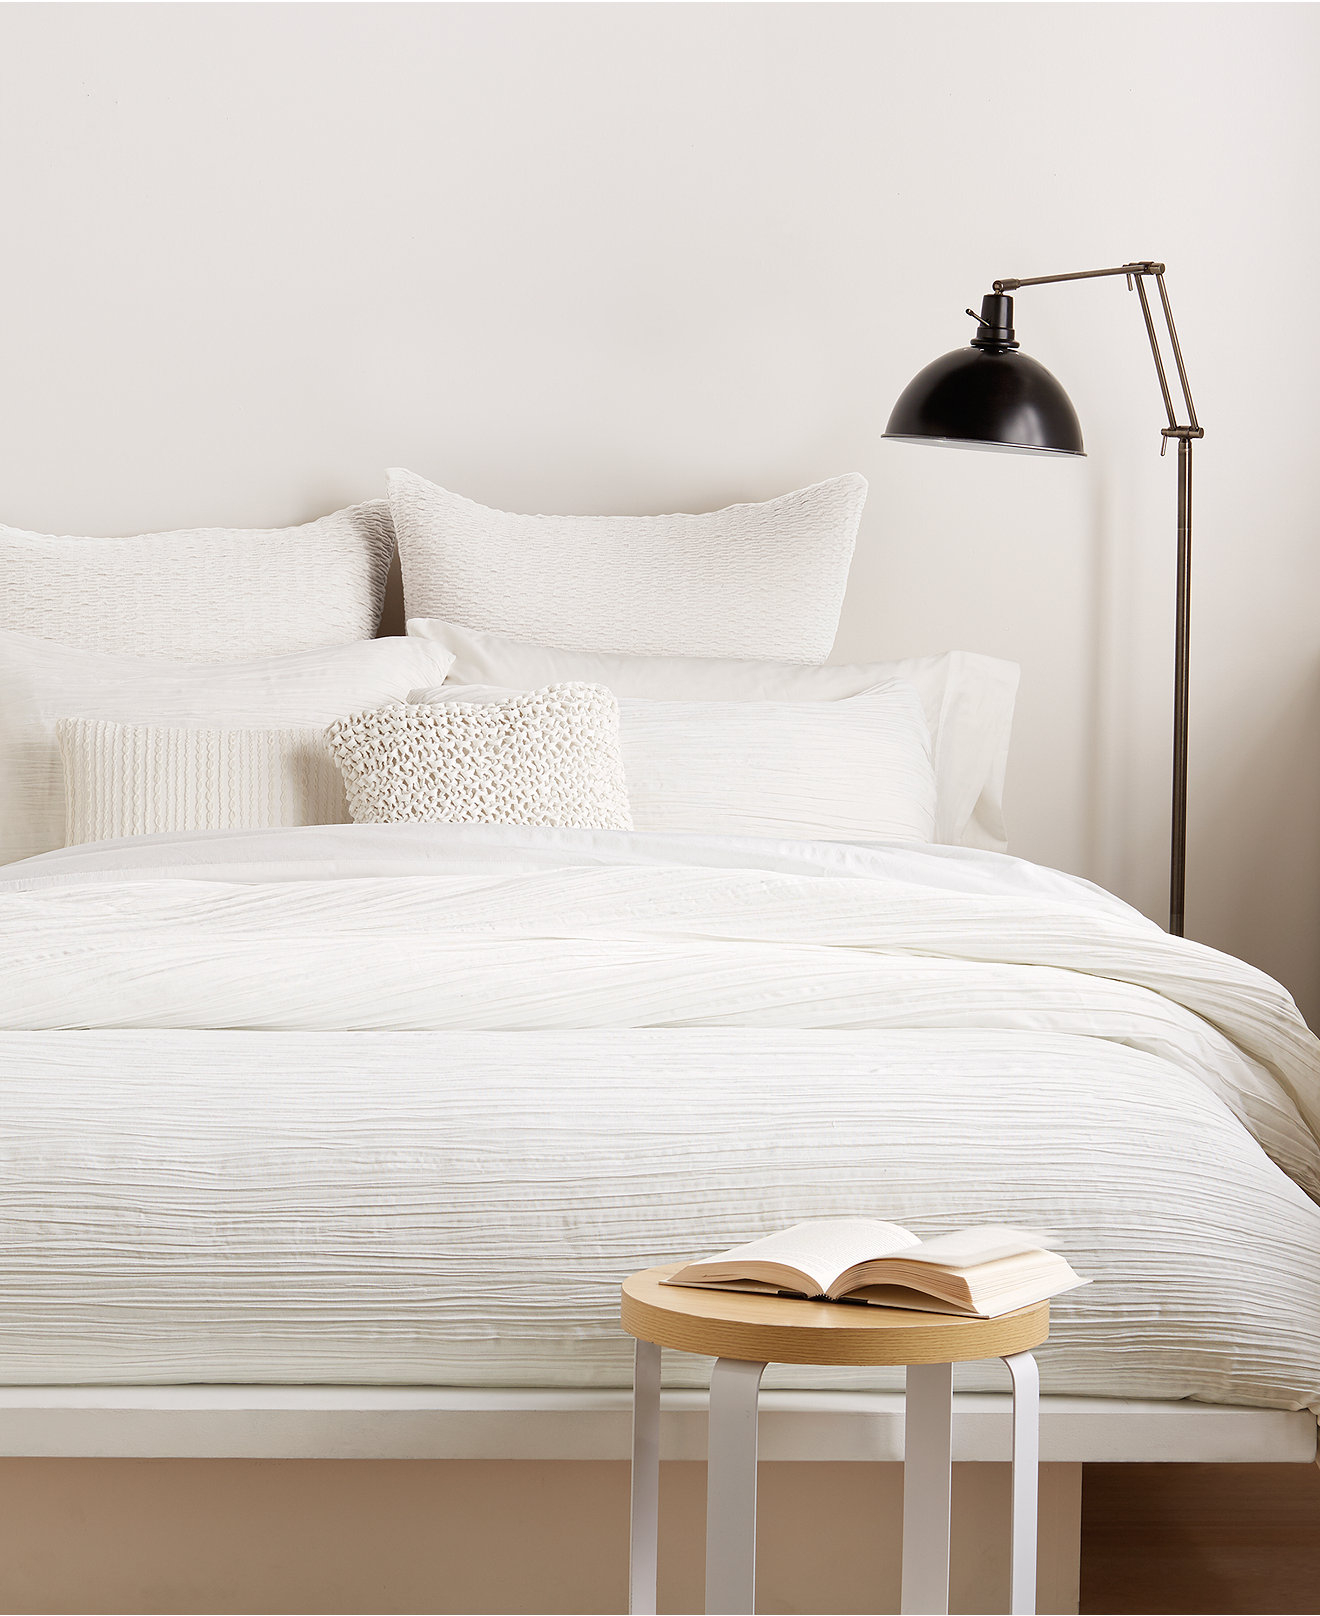 Excellent donna karan bedding with Cushion and pillows also beautiful duvet cover and sidetable and luxury wall paint color